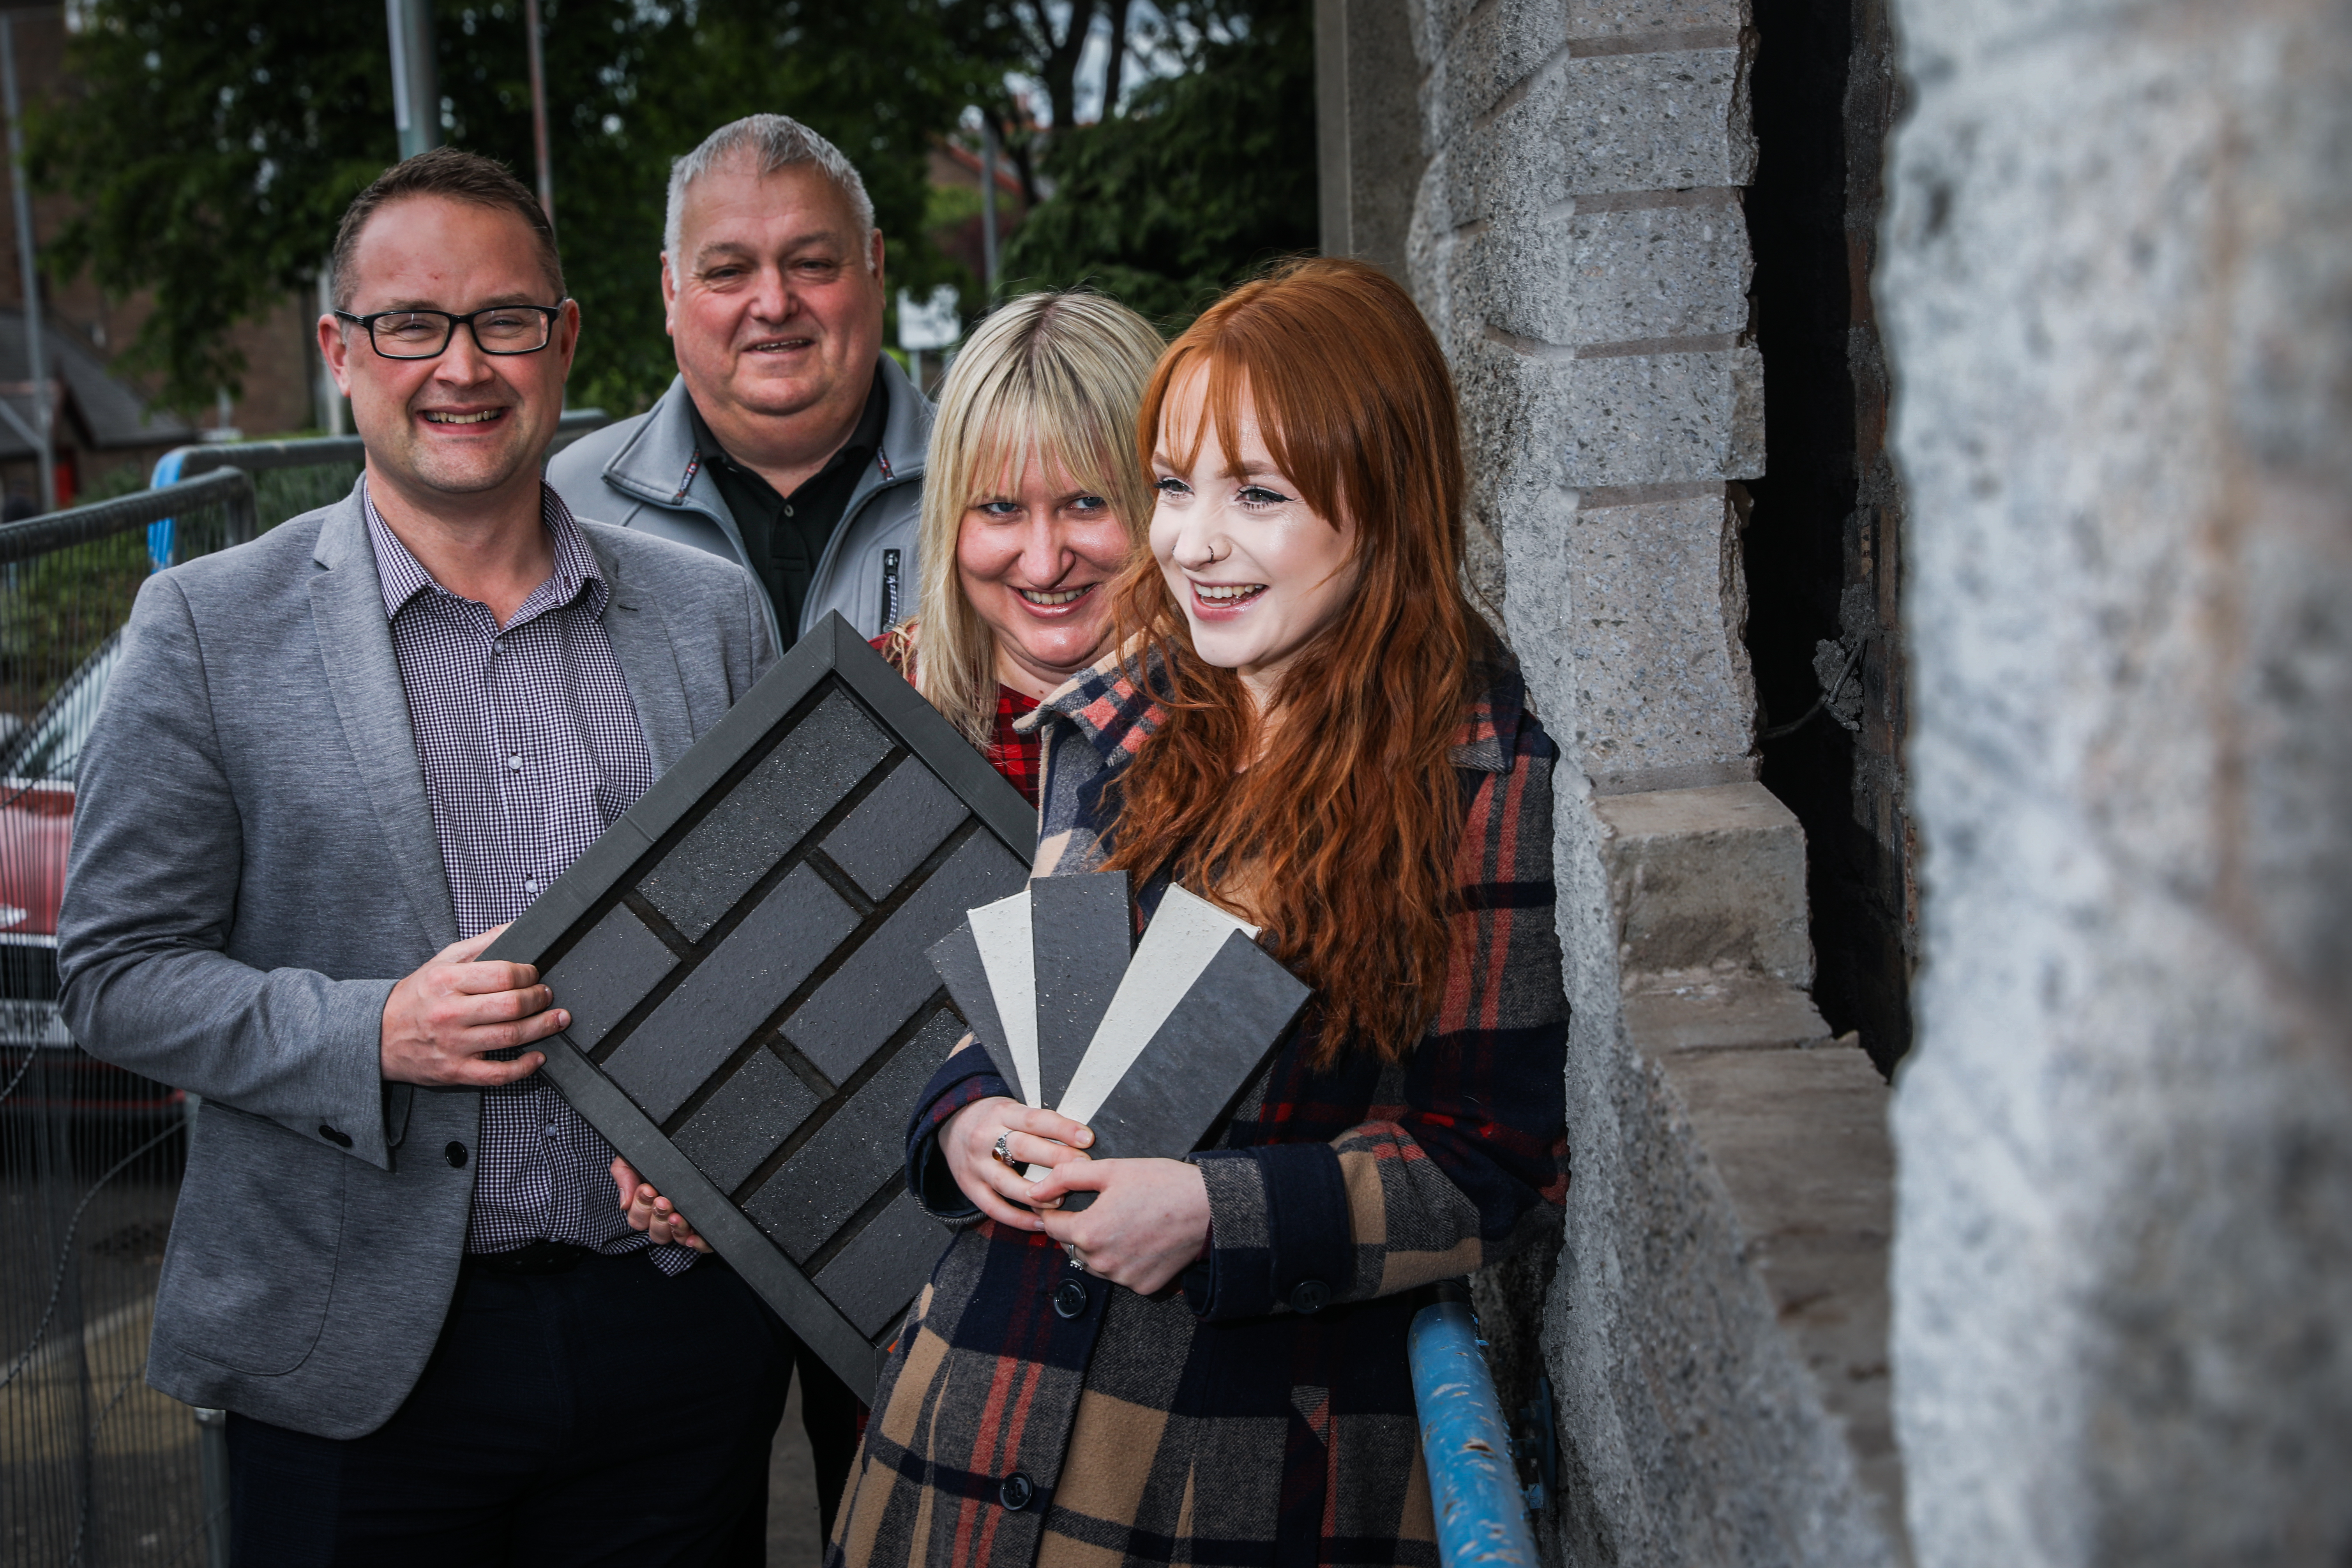 Some of the members of the Montrose Playhouse Project: Chairperson David Paton, Keith Wellington, Kristin Alexander and Maddy Doig.